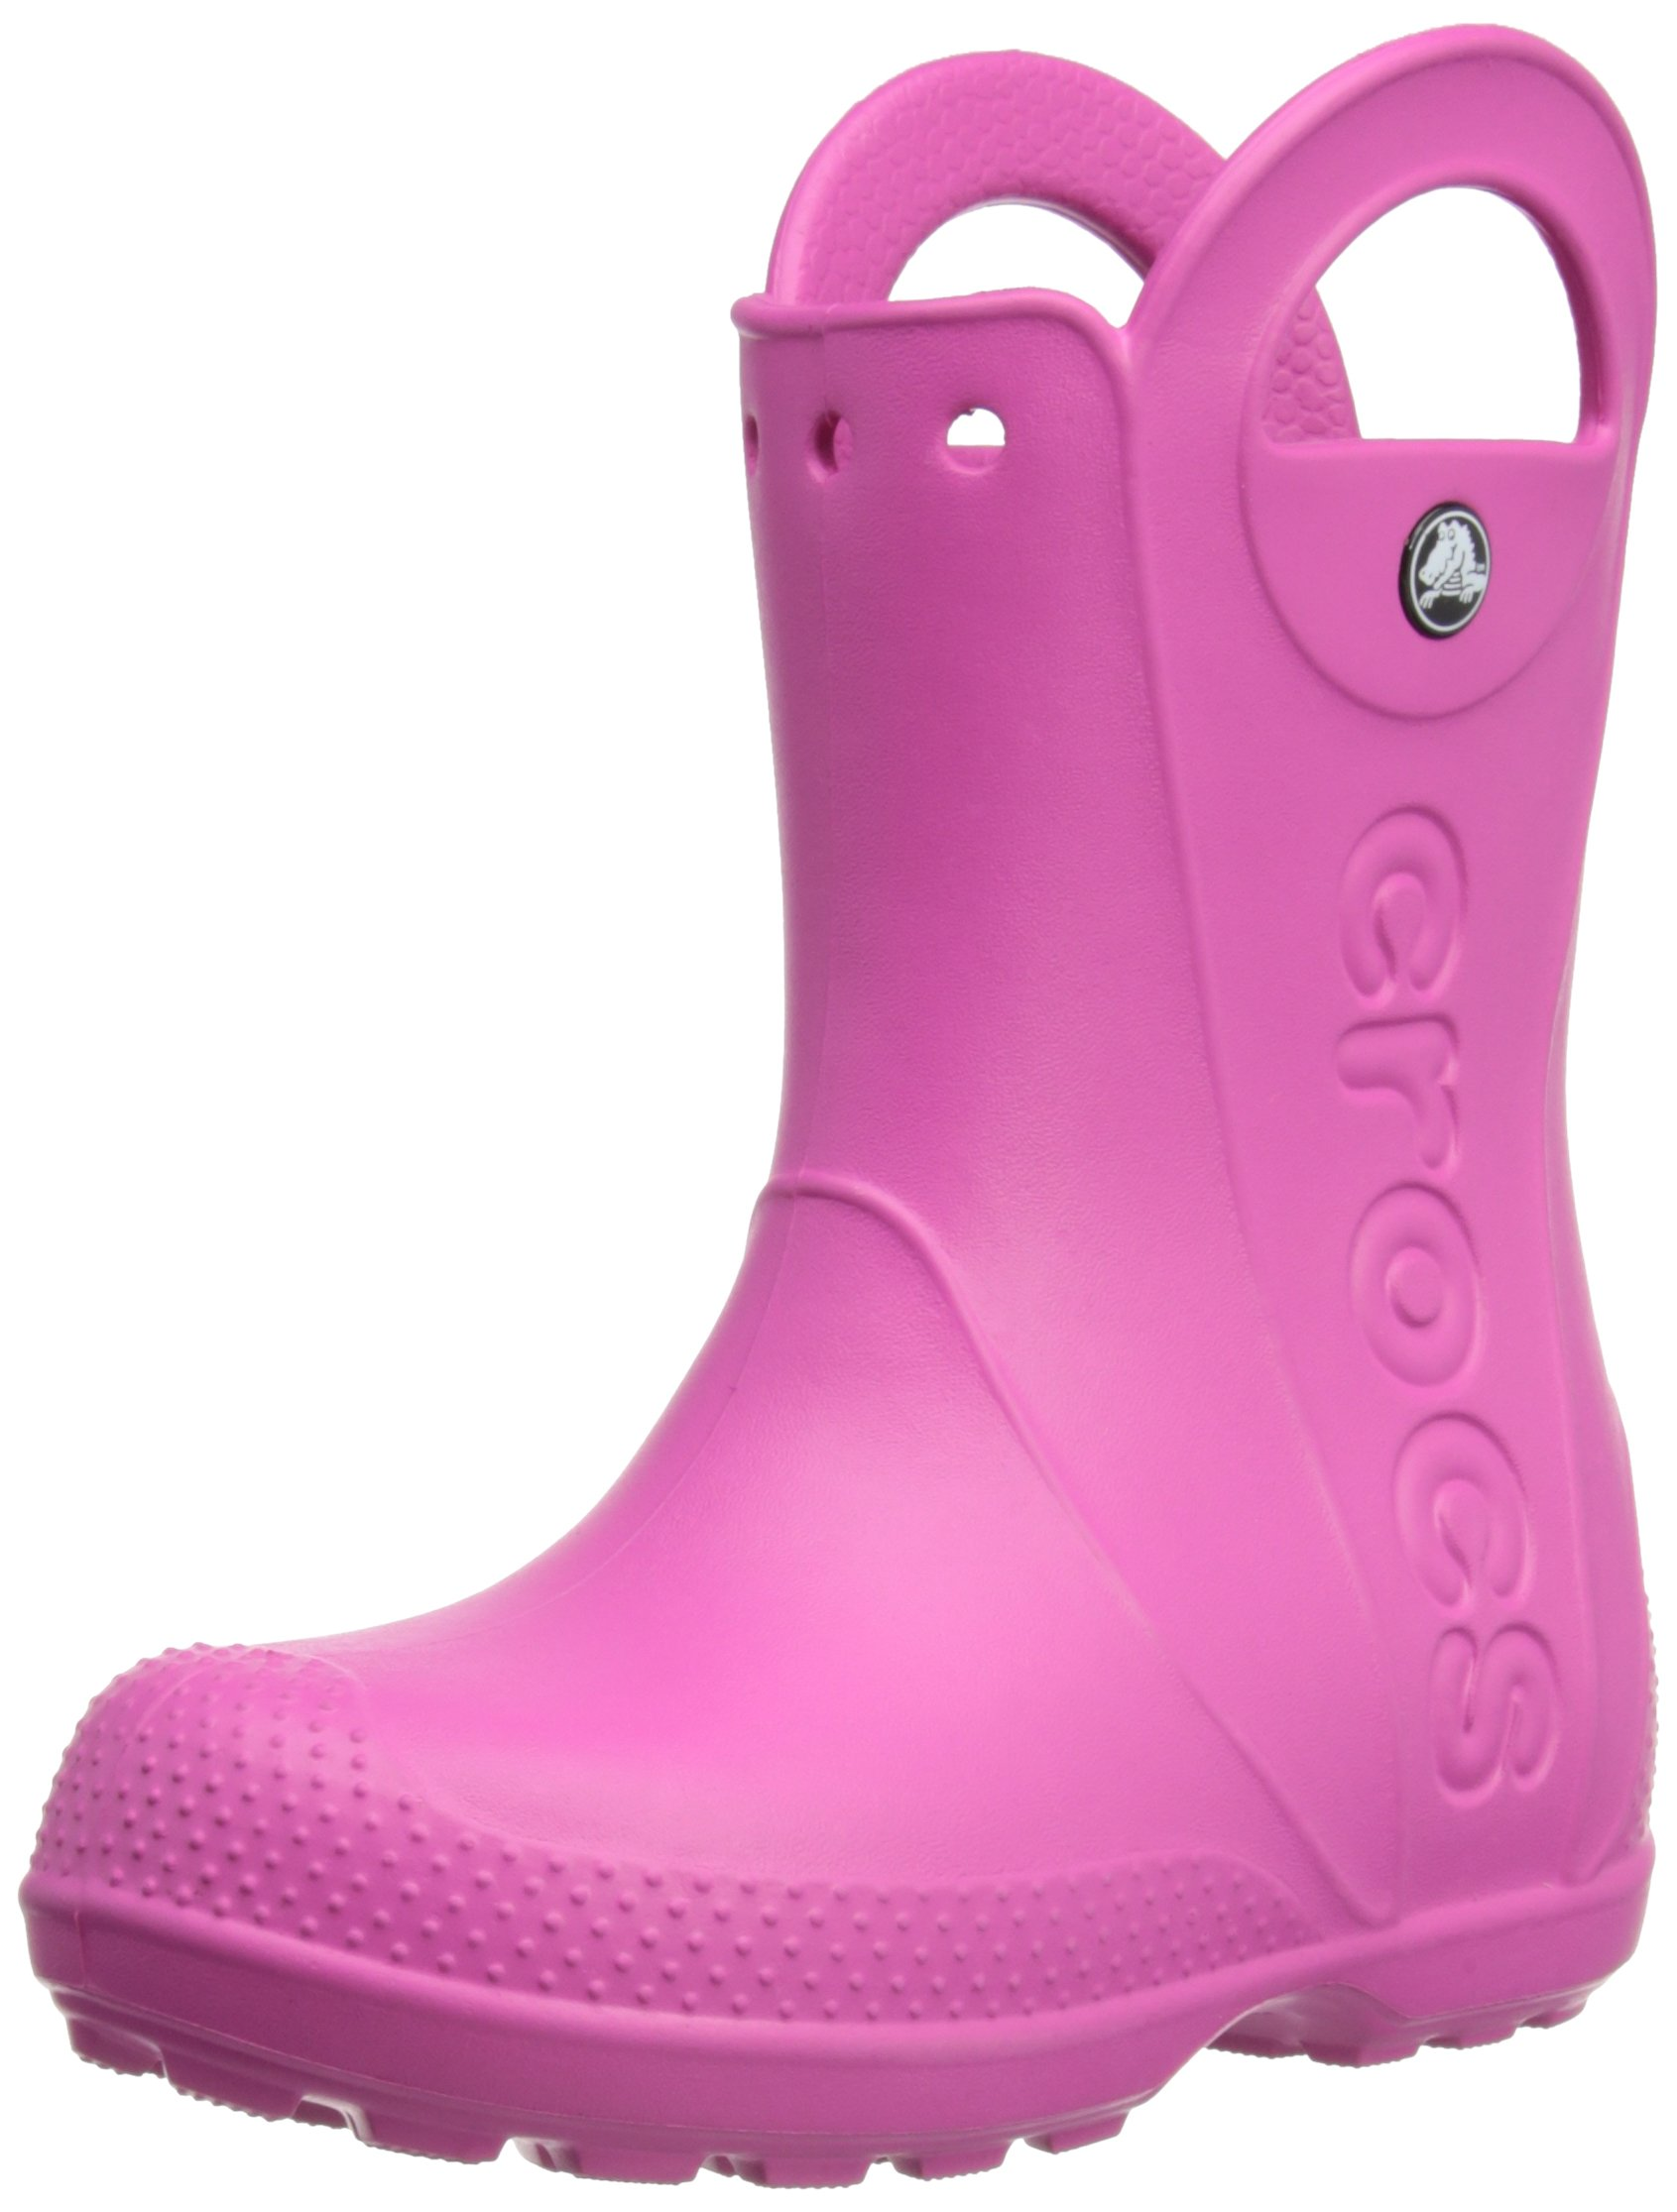 Crocs Kids' Handle It Boot,Fuchsia,1 M US Little Kid